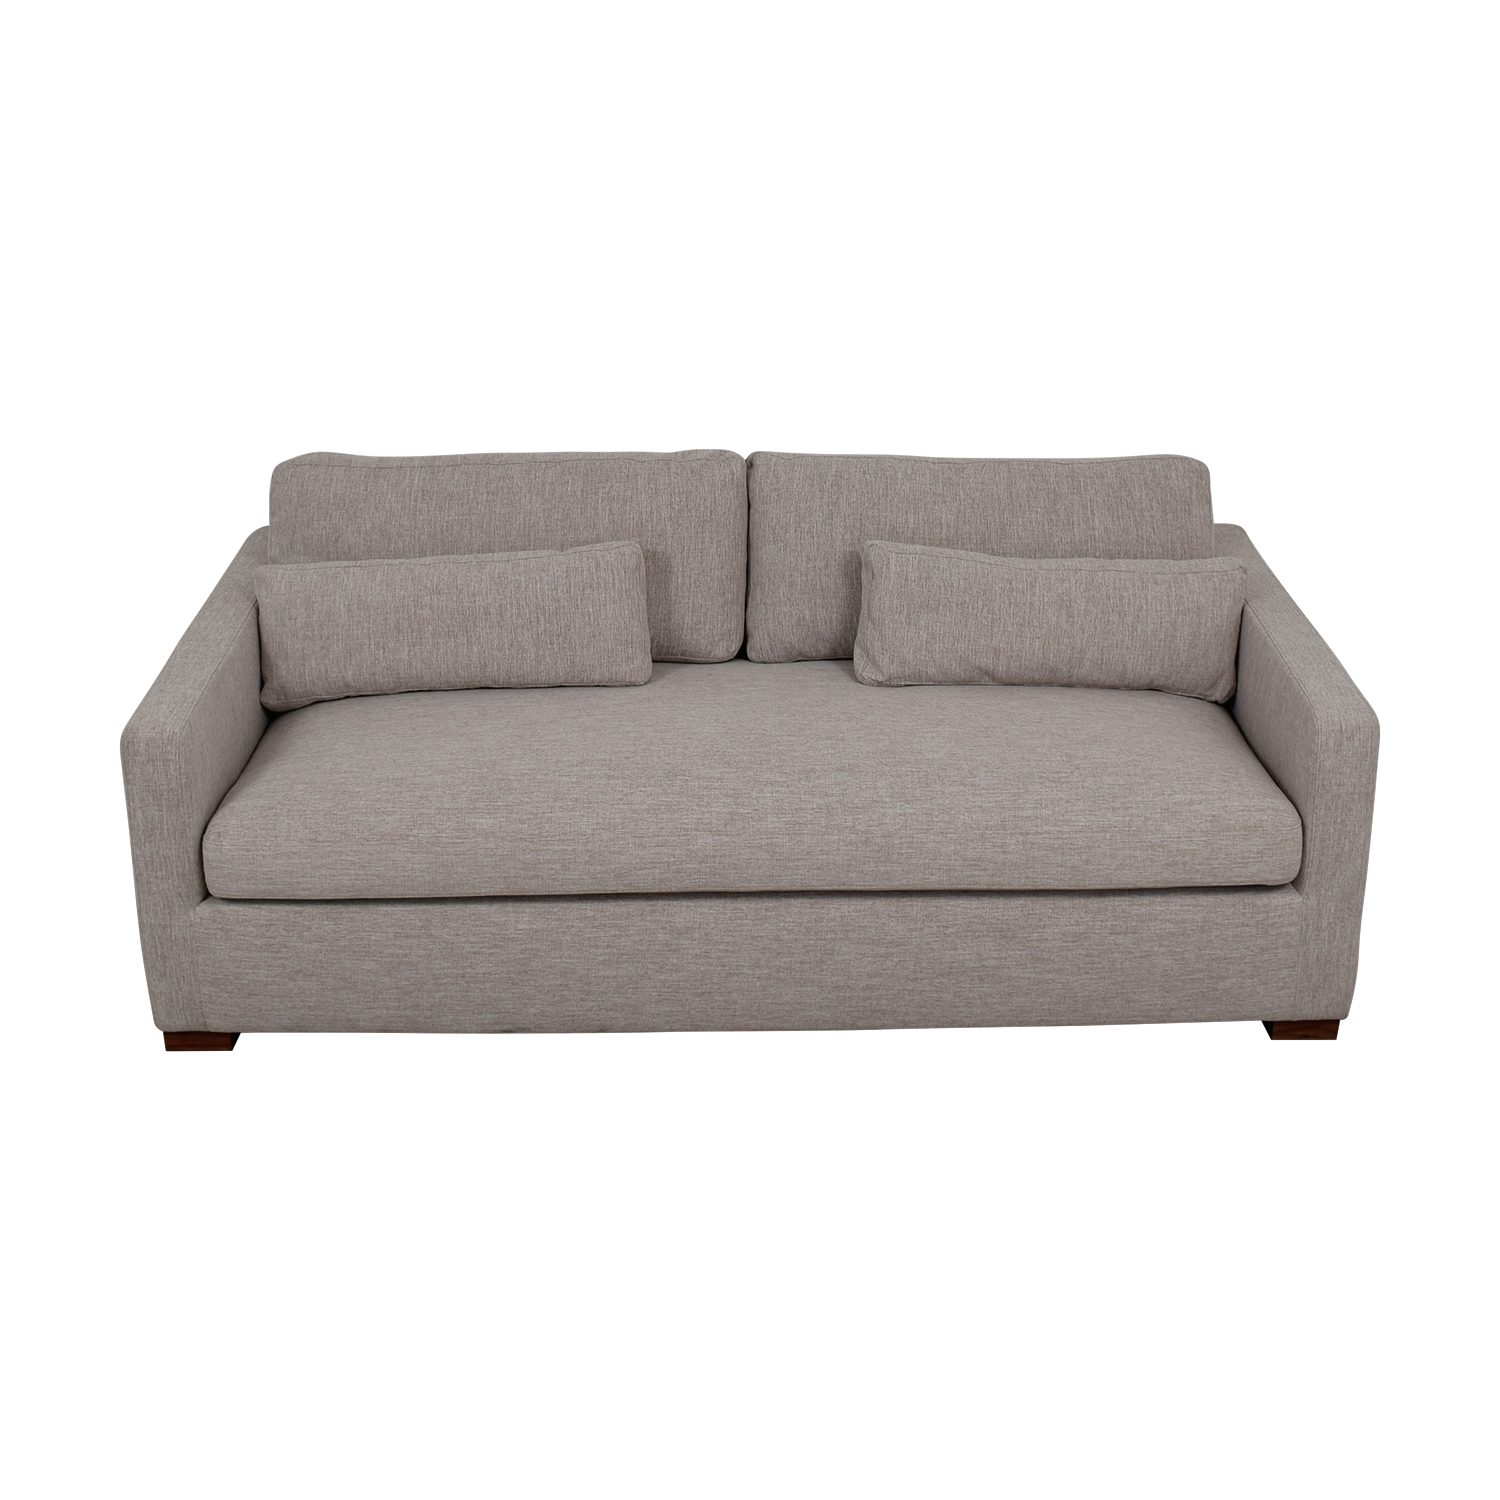 Charly Wheat Single Cushion Sofa dimensions